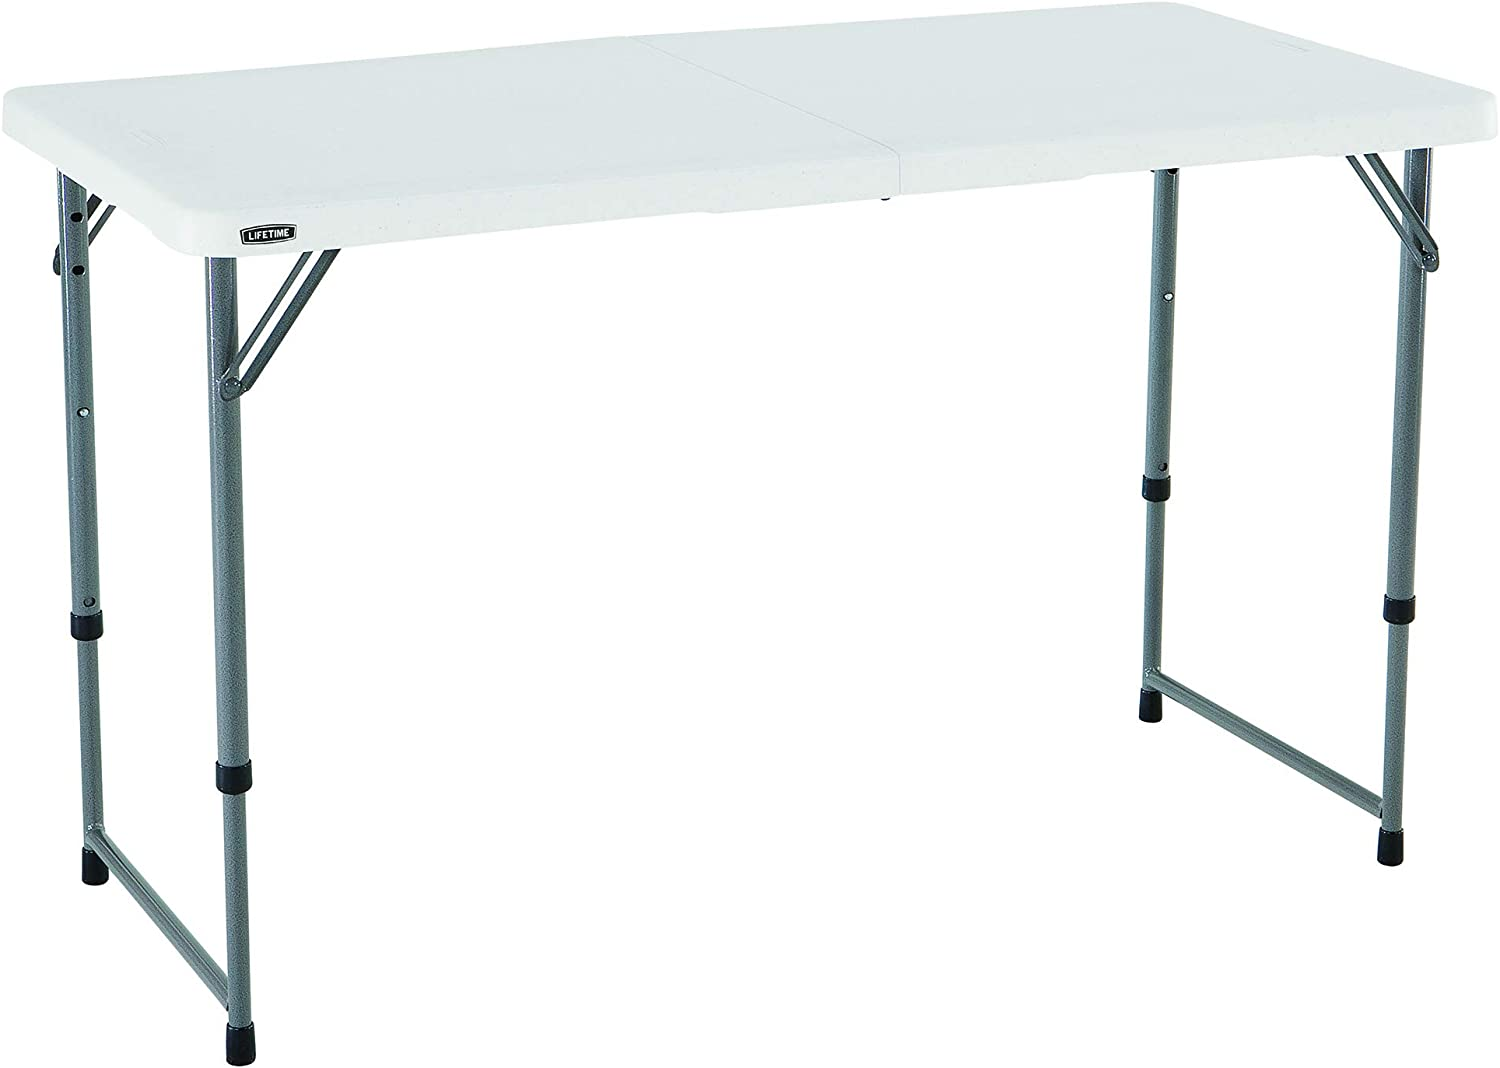 Lifetime Height Adjustable Craft Camping and Utility Folding Table, 4 ft, 4'/48 x 24, White Granite : Sewing Table : Garden & Outdoor